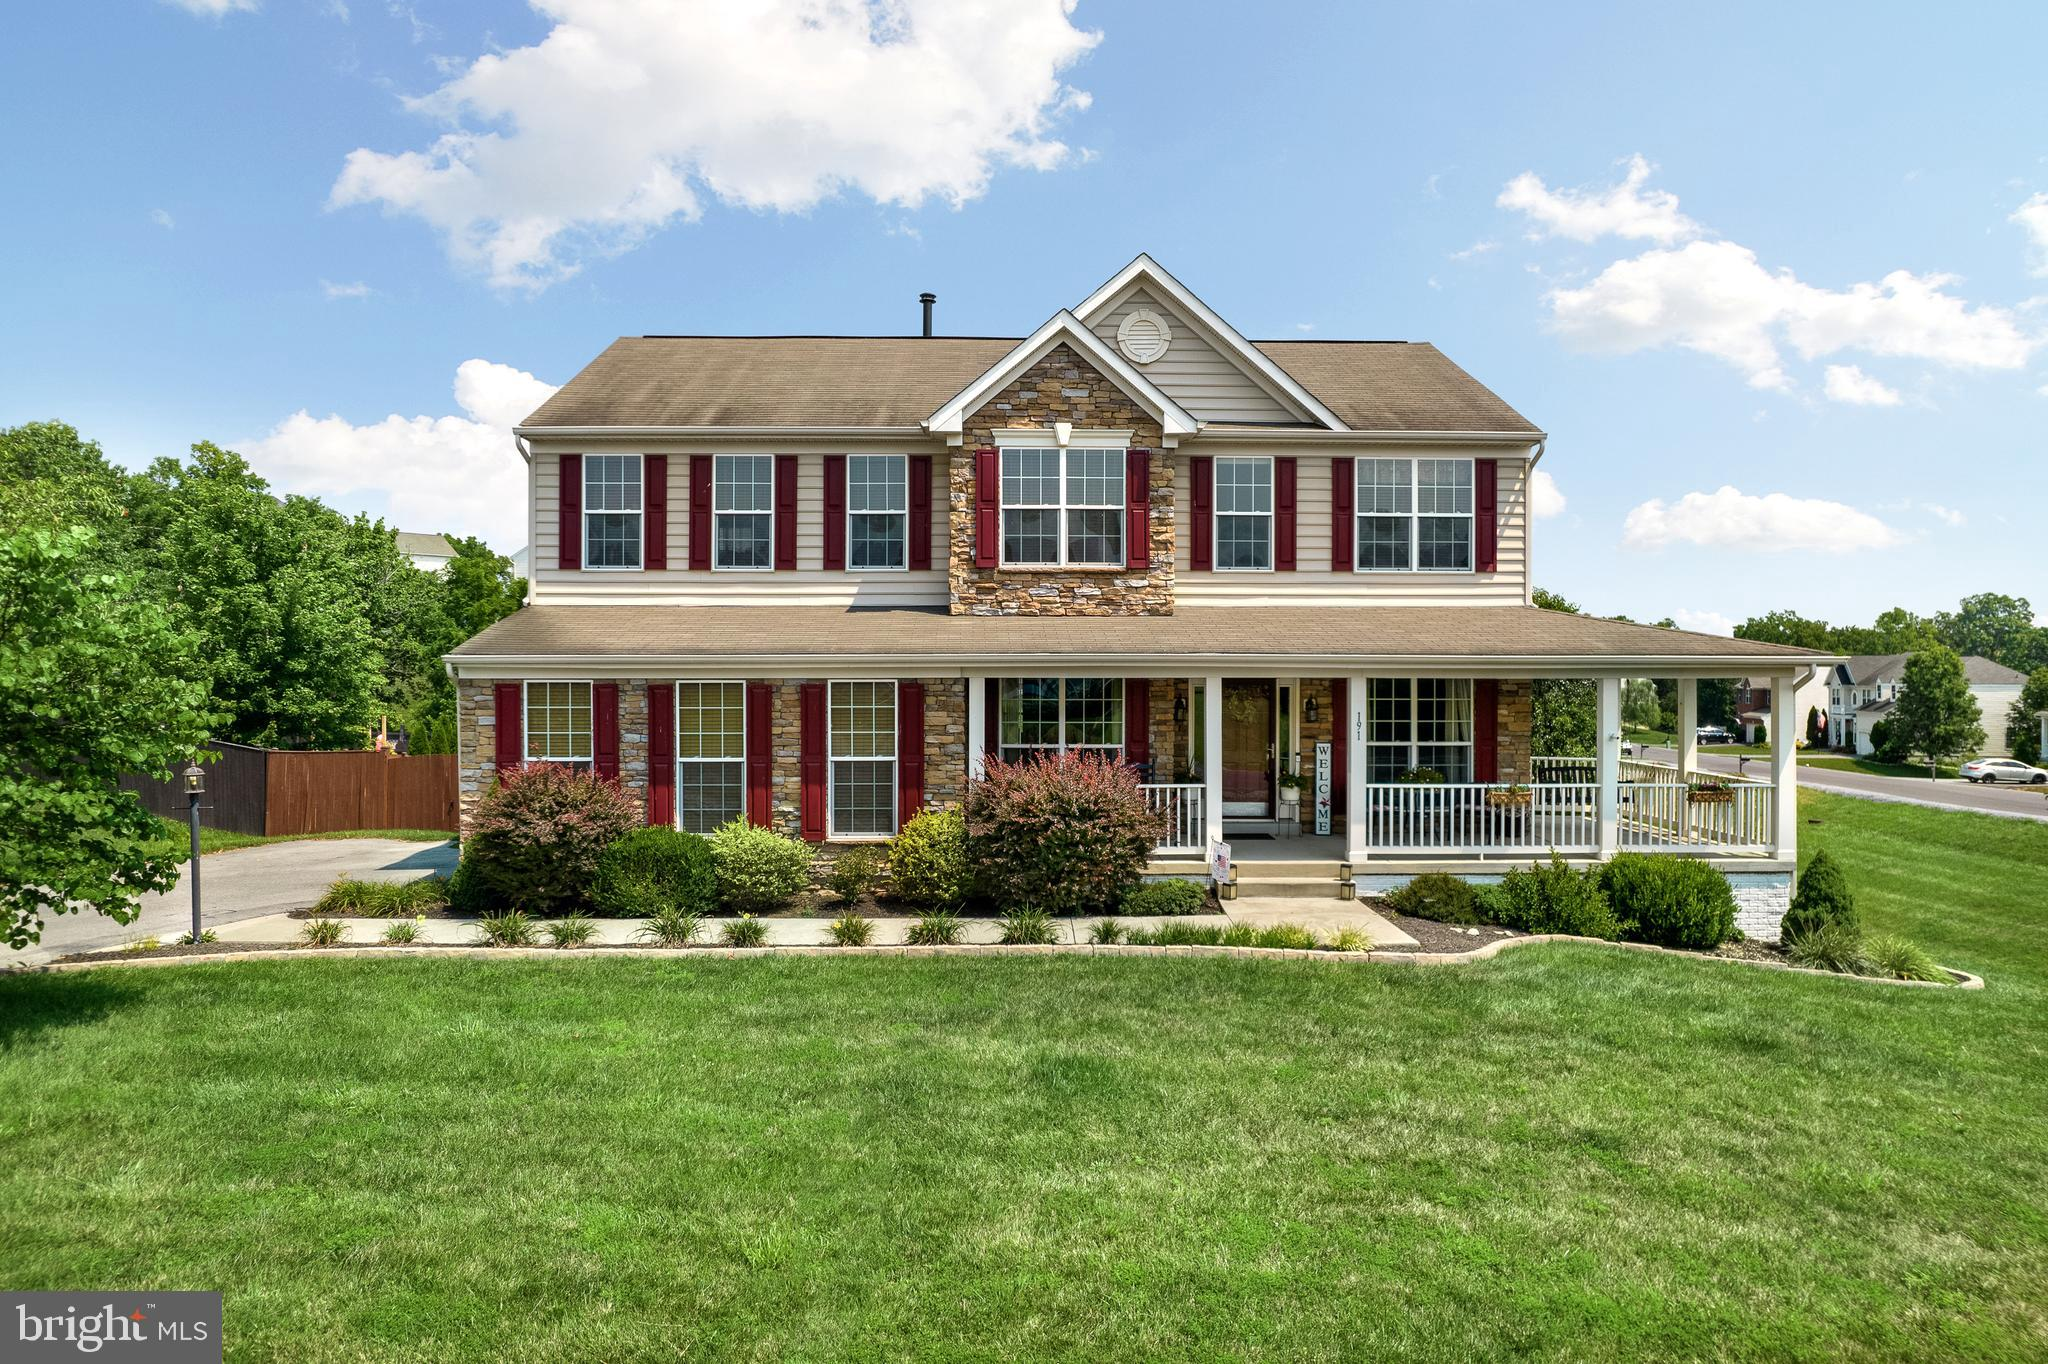 SHOWSTOPPER! This gorgeous well designed home truly has it all! Featuring 6 bedrooms, 3.5 baths, a f